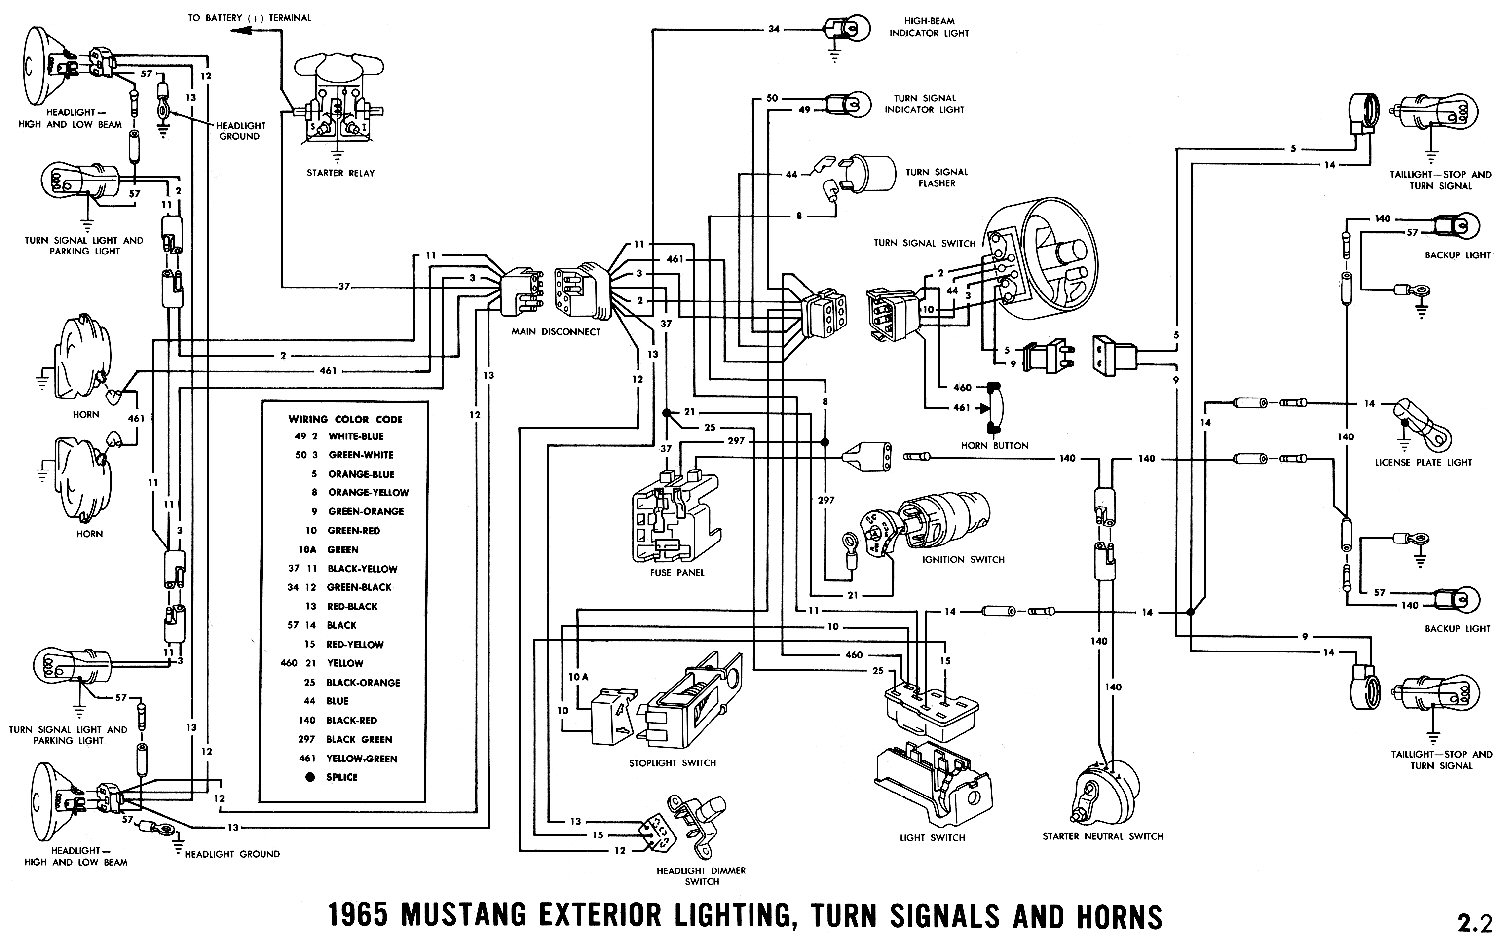 1964 falcon wiring harness free download diagram schematic